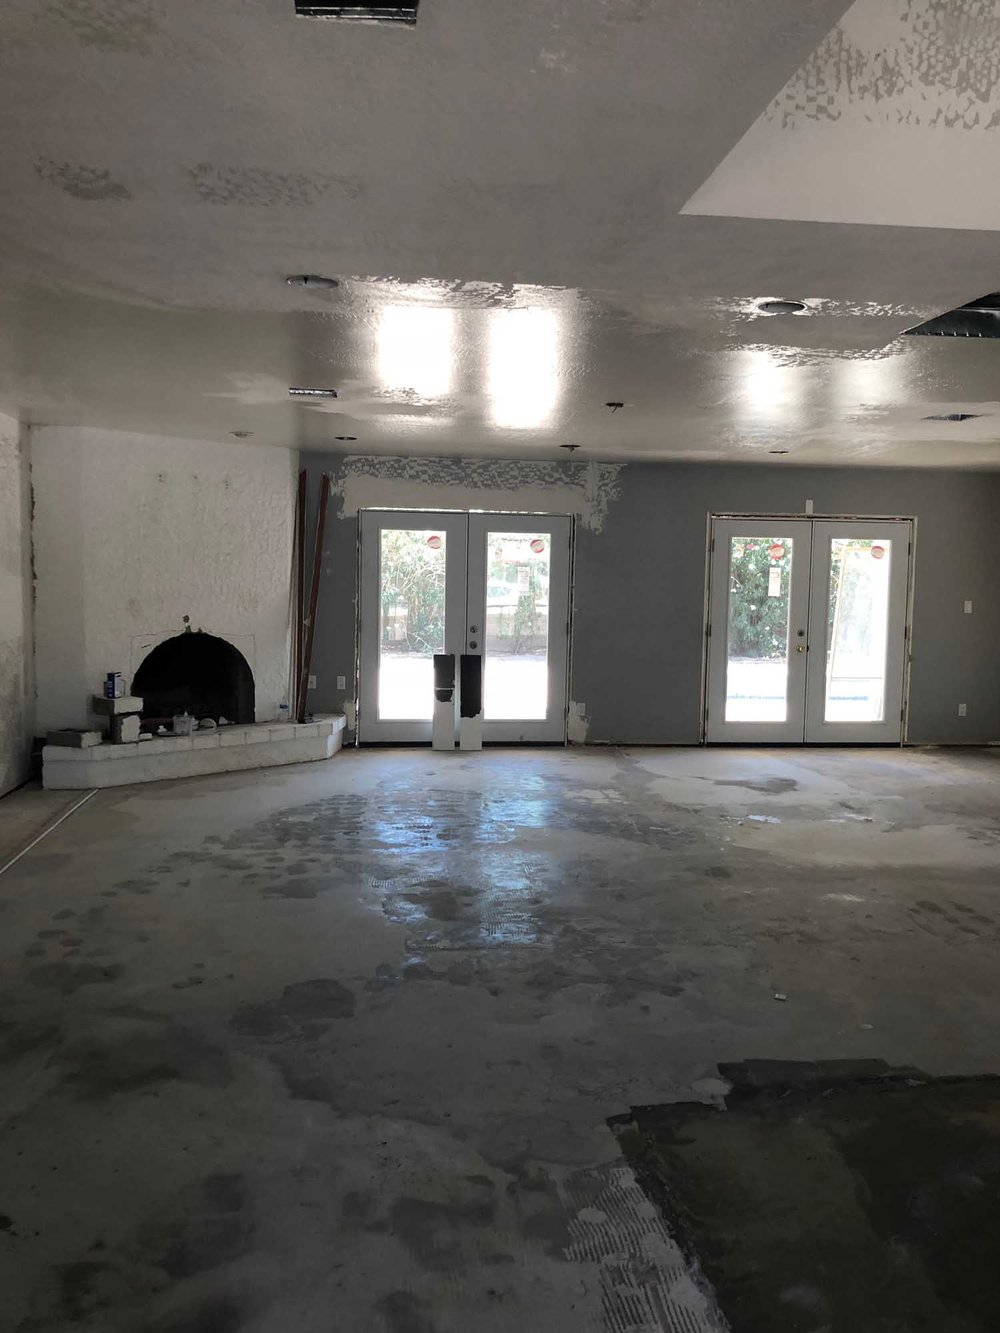 Ongoing room renovation with large windows and fireplace